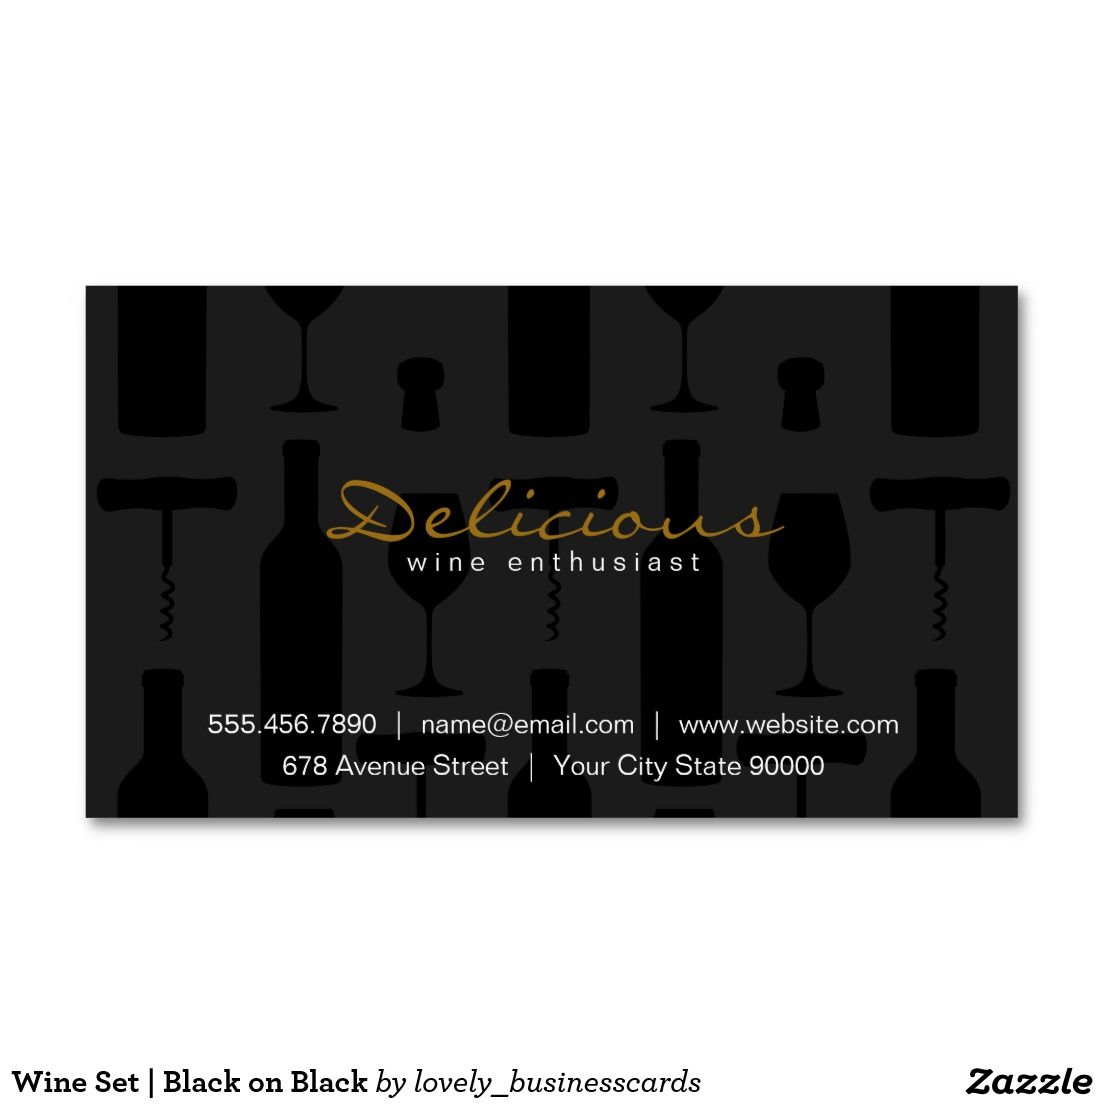 Wine set black on black business card business cards wine and wine set black on black business card magicingreecefo Image collections